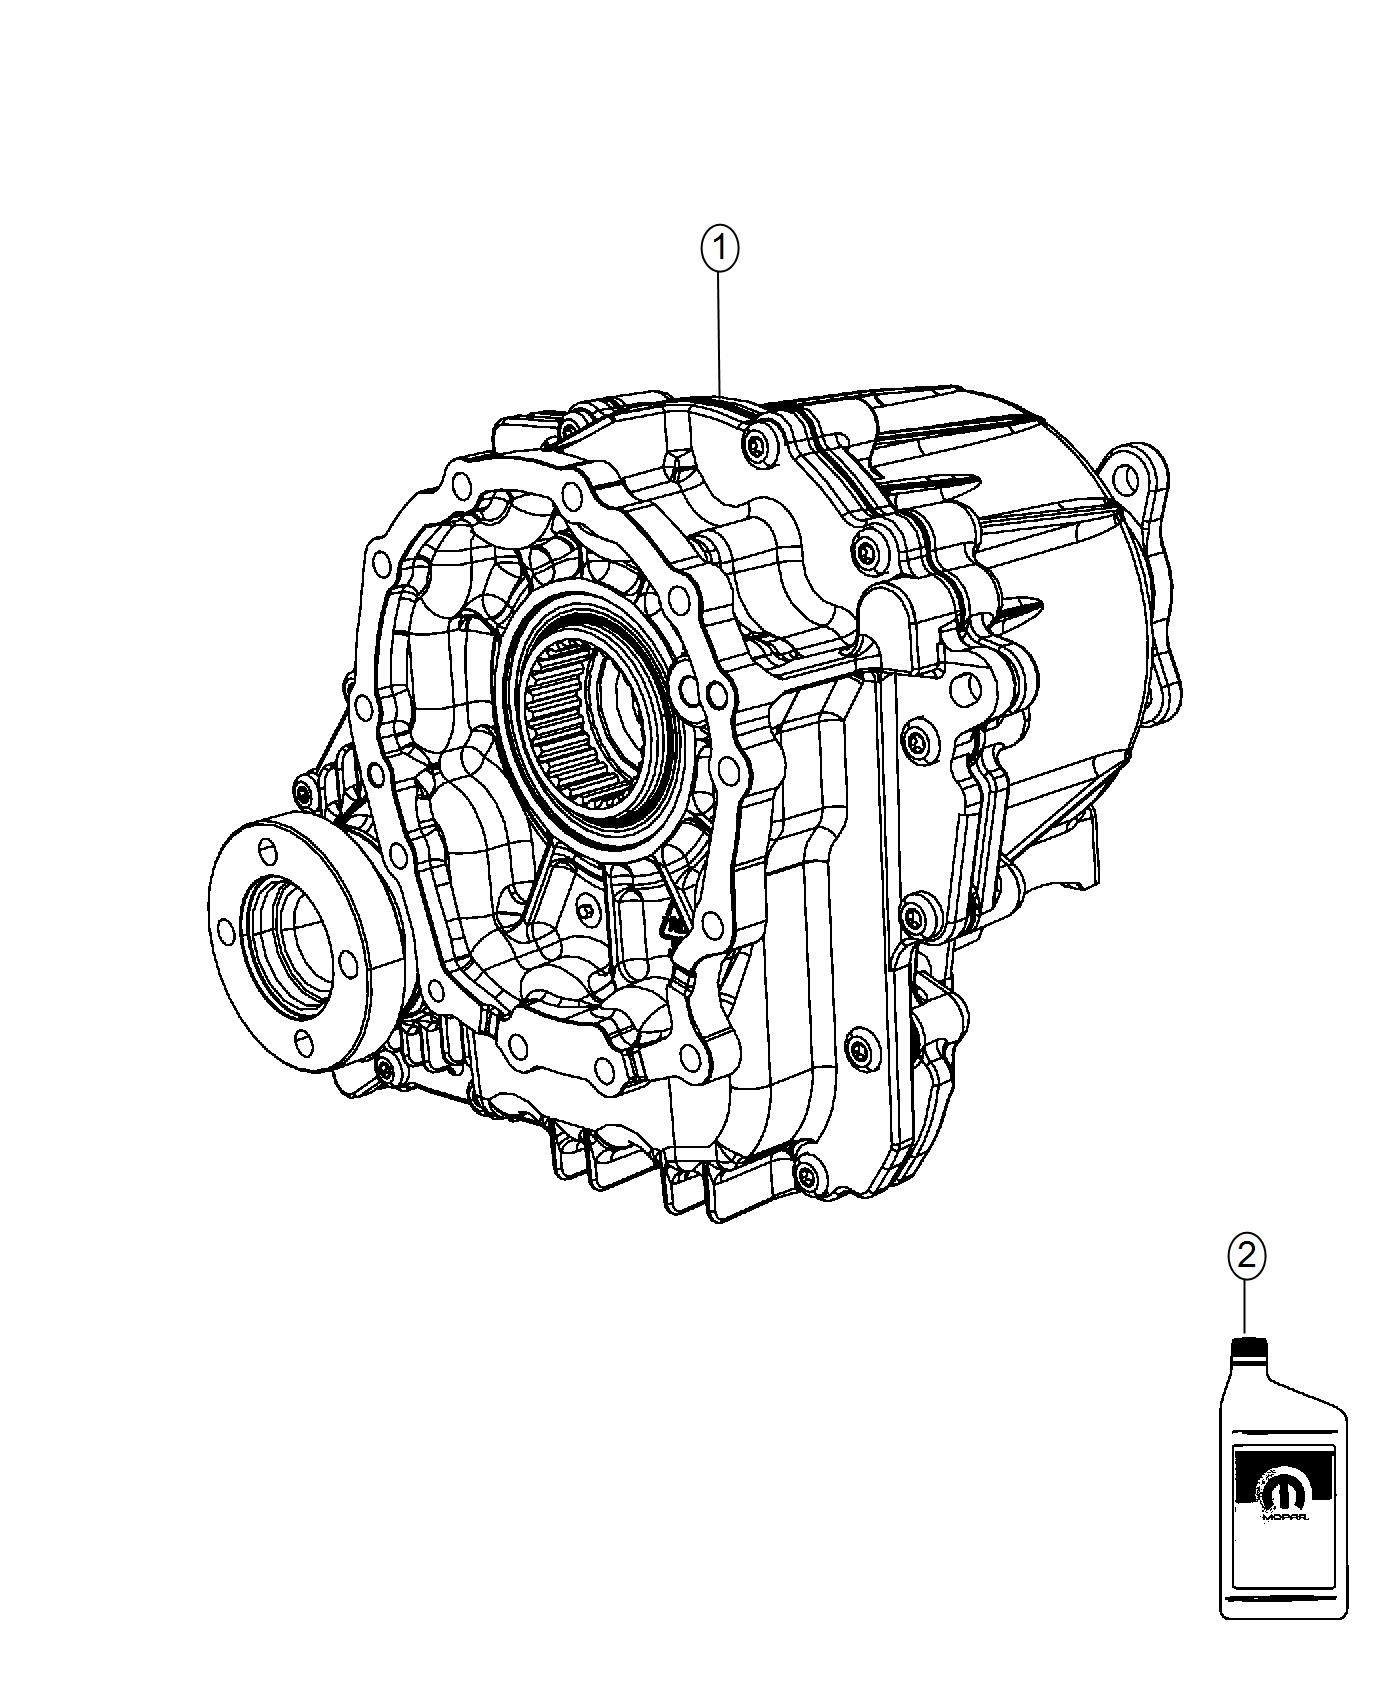 dodge challenger transfer case  bw 44-40  active  axle  disconnect